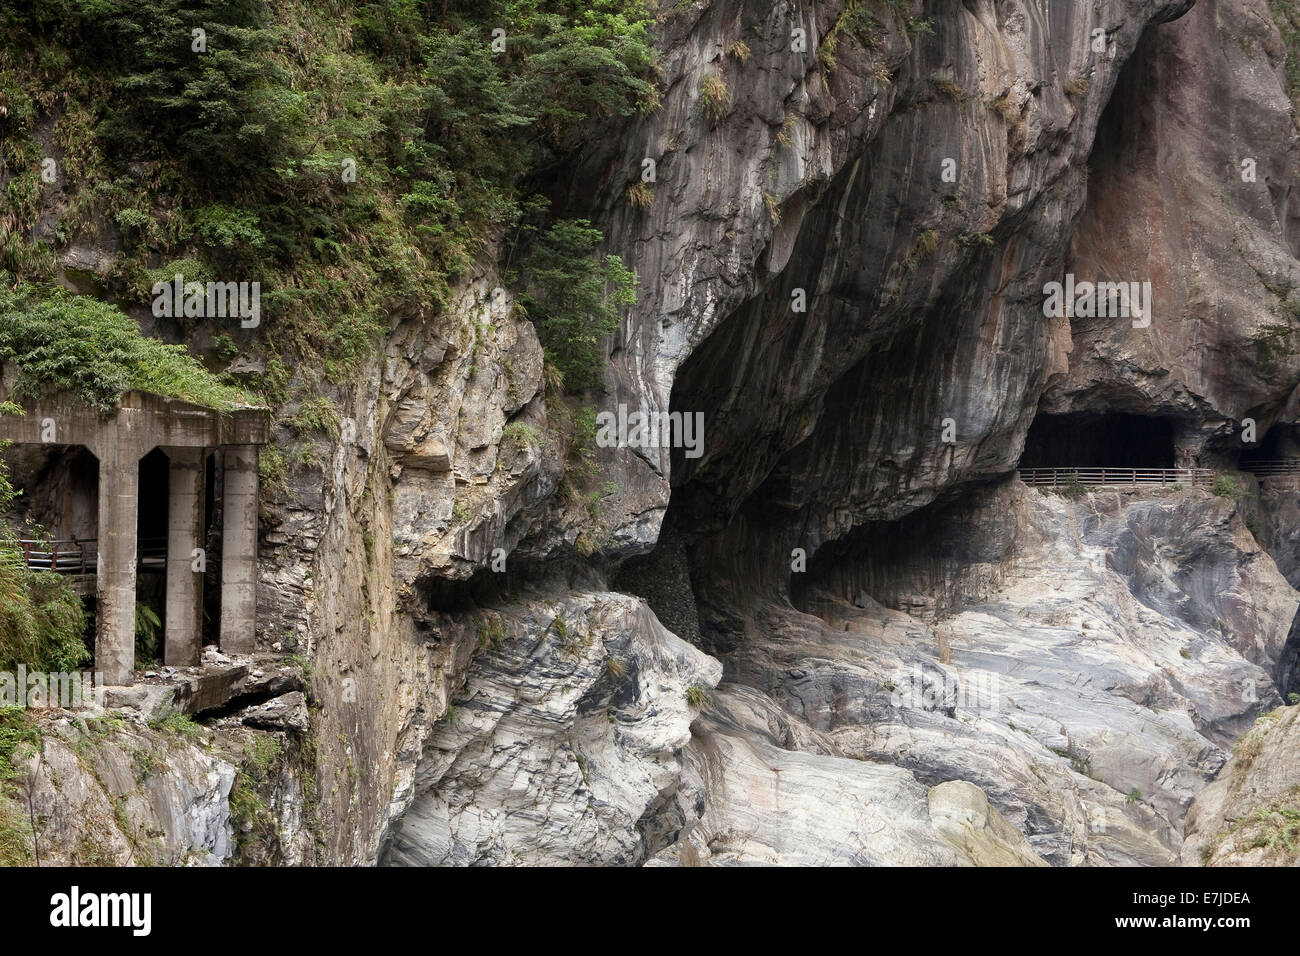 Asia, China, Chinese, rocks, cliffs, rock formations ...